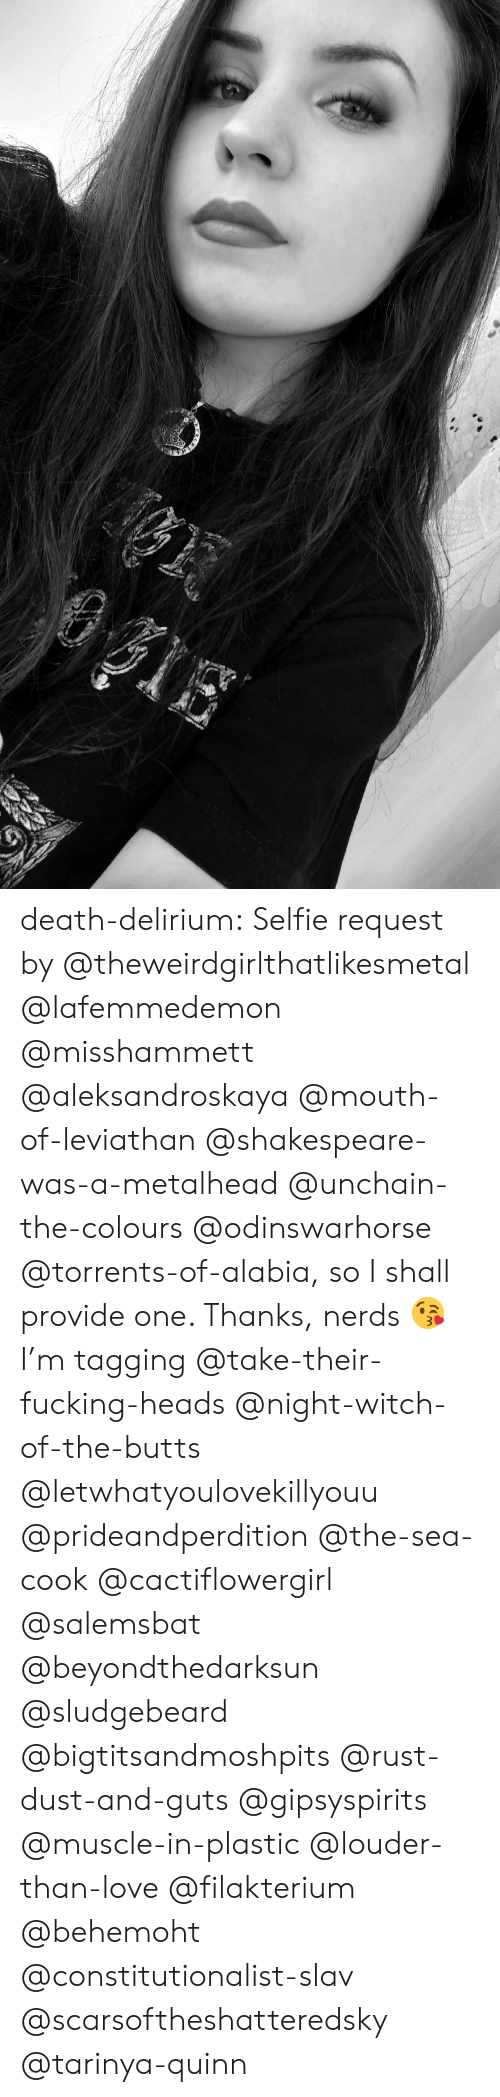 Torrents: death-delirium:  Selfie request by @theweirdgirlthatlikesmetal @lafemmedemon @misshammett @aleksandroskaya @mouth-of-leviathan @shakespeare-was-a-metalhead  @unchain-the-colours @odinswarhorse @torrents-of-alabia, so I shall provide one. Thanks, nerds 😘  I'm tagging @take-their-fucking-heads @night-witch-of-the-butts @letwhatyoulovekillyouu @prideandperdition @the-sea-cook @cactiflowergirl @salemsbat @beyondthedarksun @sludgebeard @bigtitsandmoshpits @rust-dust-and-guts @gipsyspirits @muscle-in-plastic @louder-than-love @filakterium @behemoht @constitutionalist-slav @scarsoftheshatteredsky @tarinya-quinn